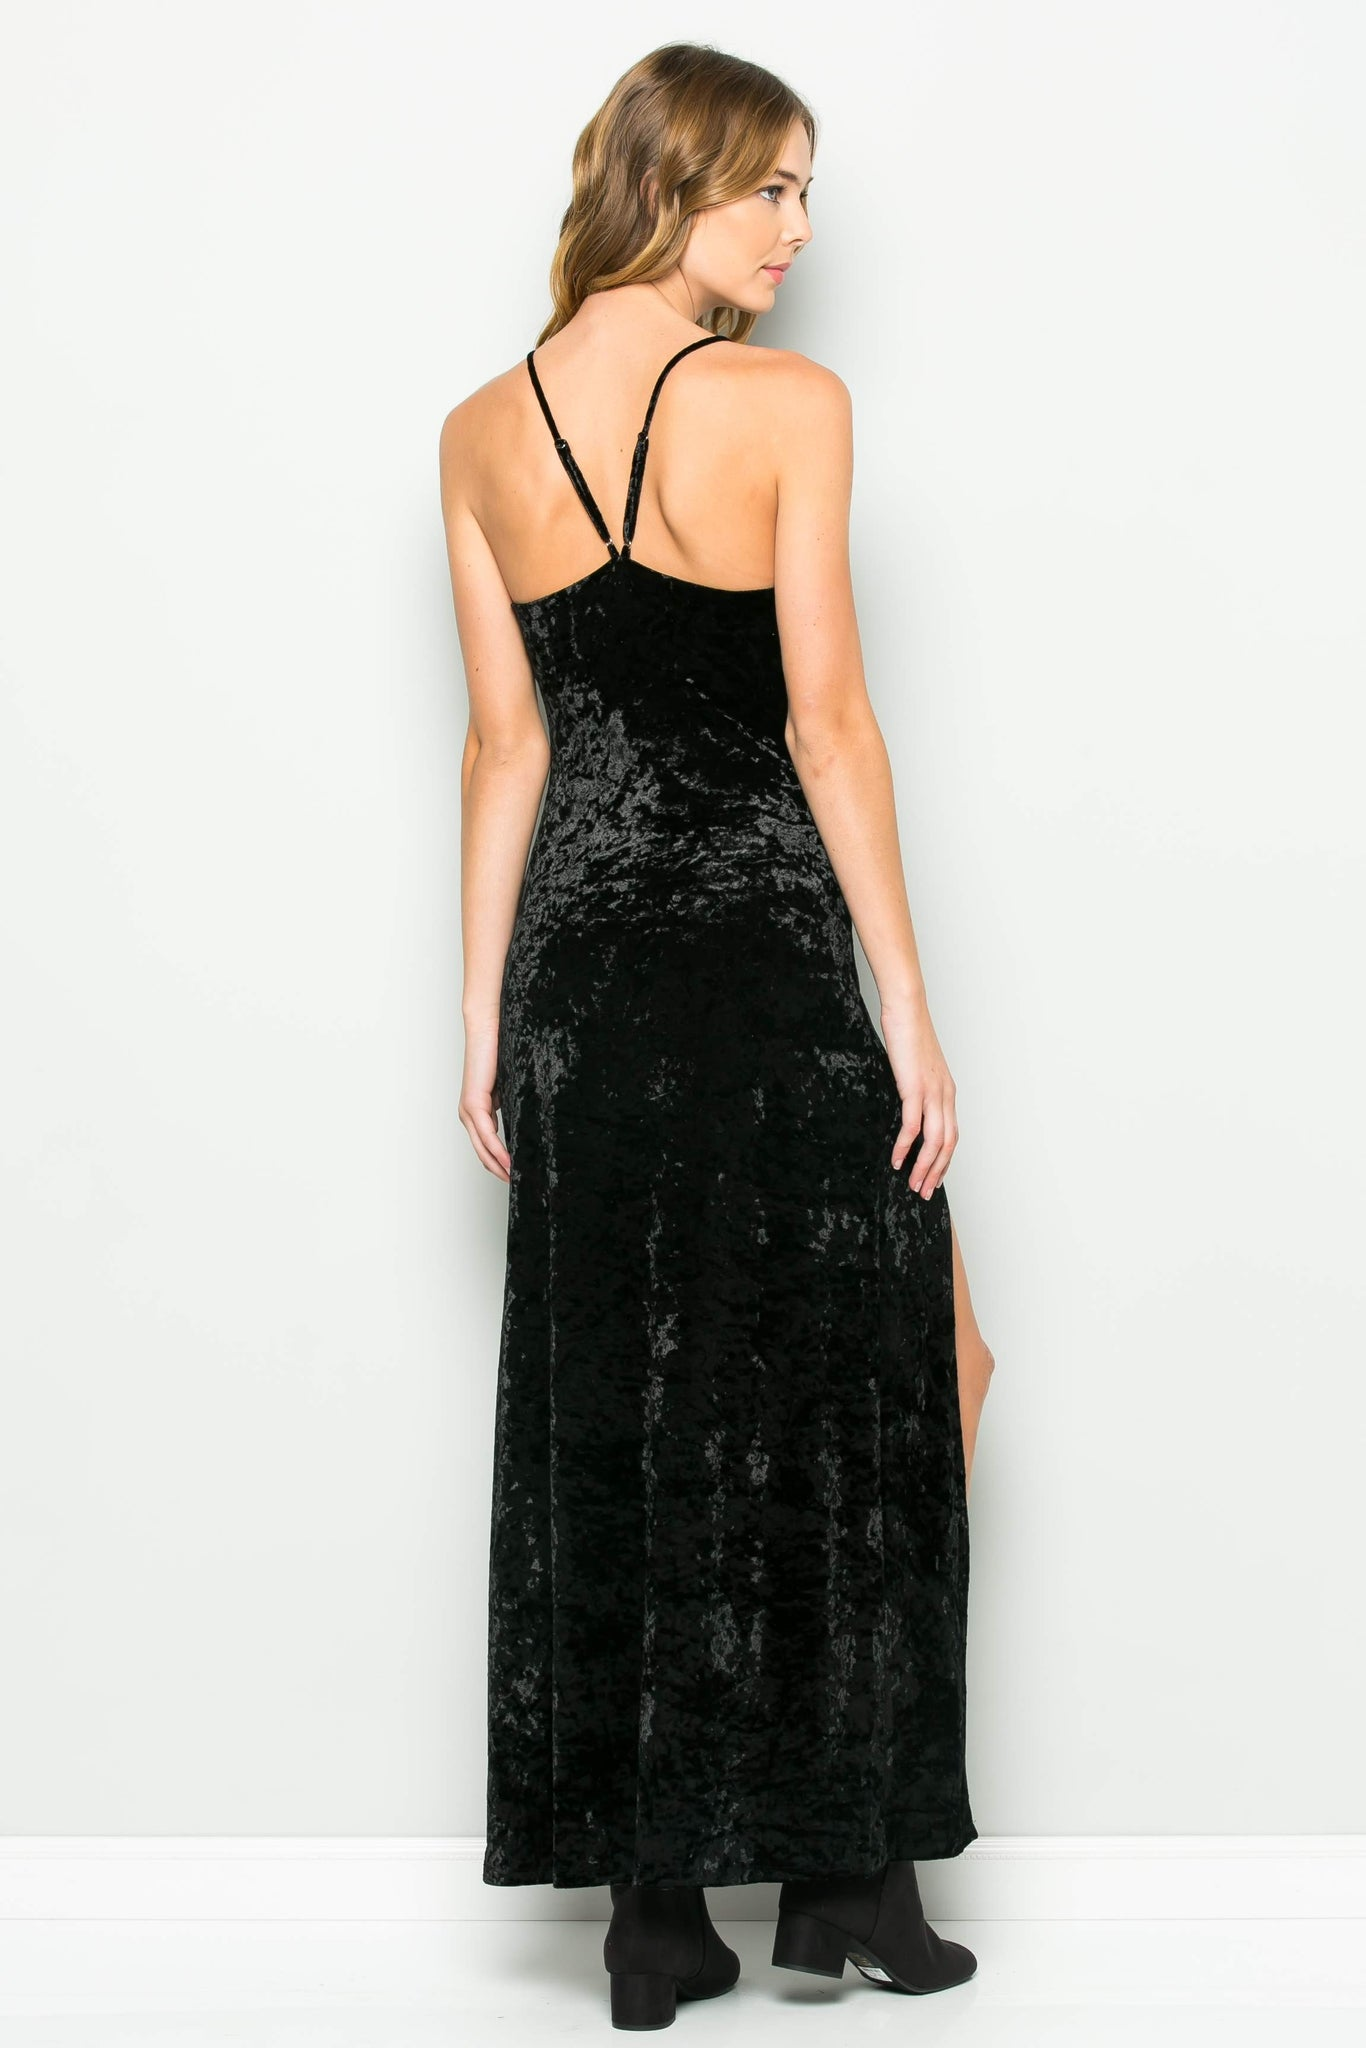 Crushed Velvet High Slit Strap Dress (Black)